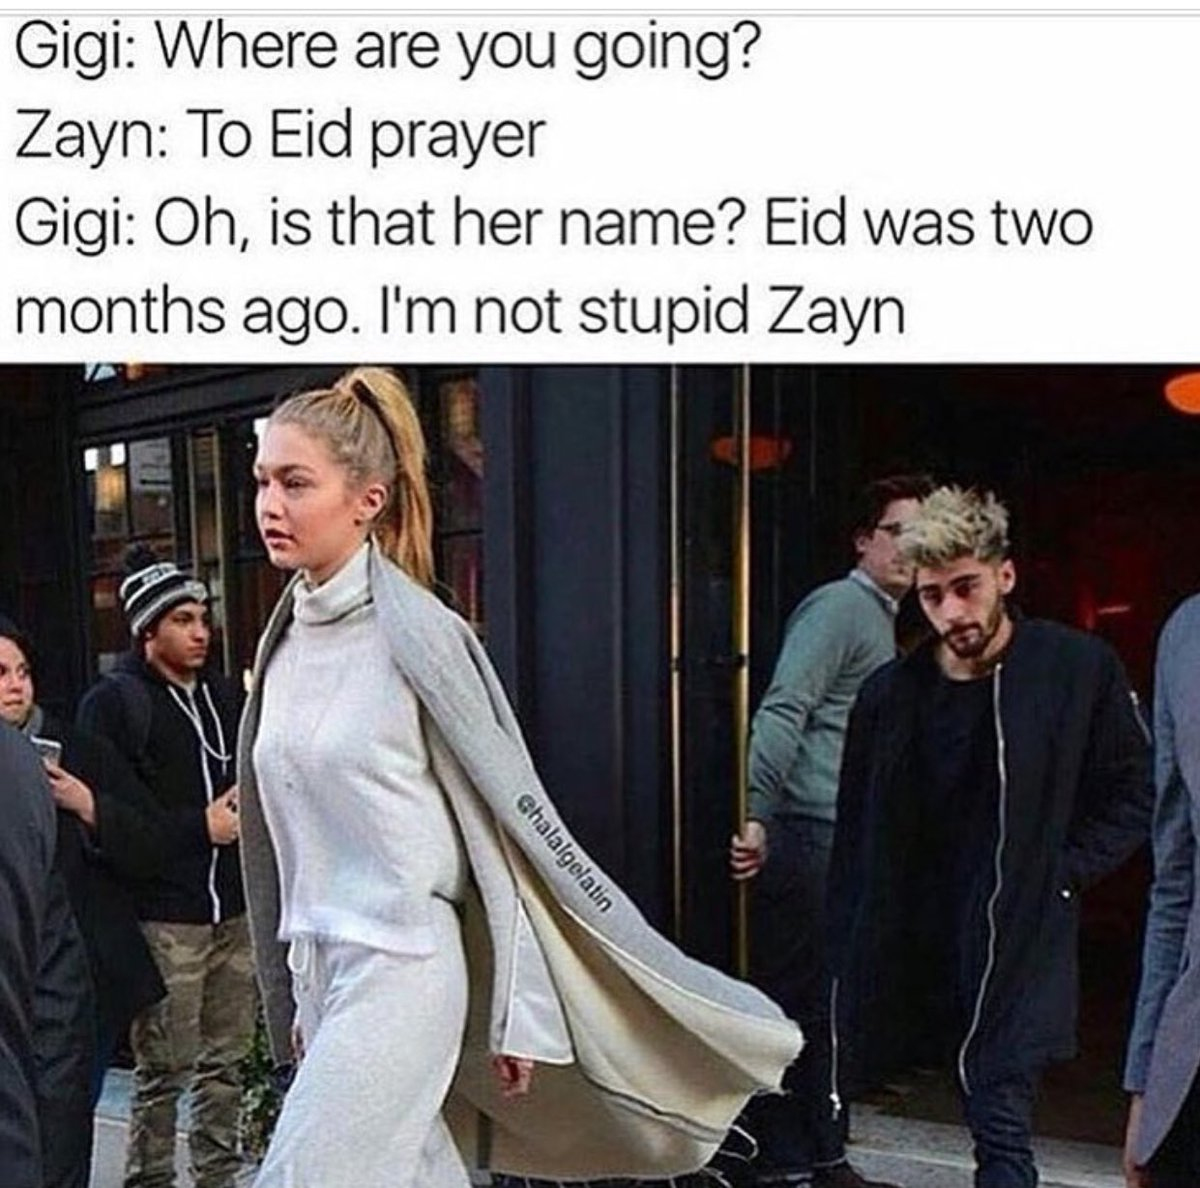 This is funny #OneDirection #ZaynMalik #GigiHadid<br>http://pic.twitter.com/Ro7cUiI6Cn